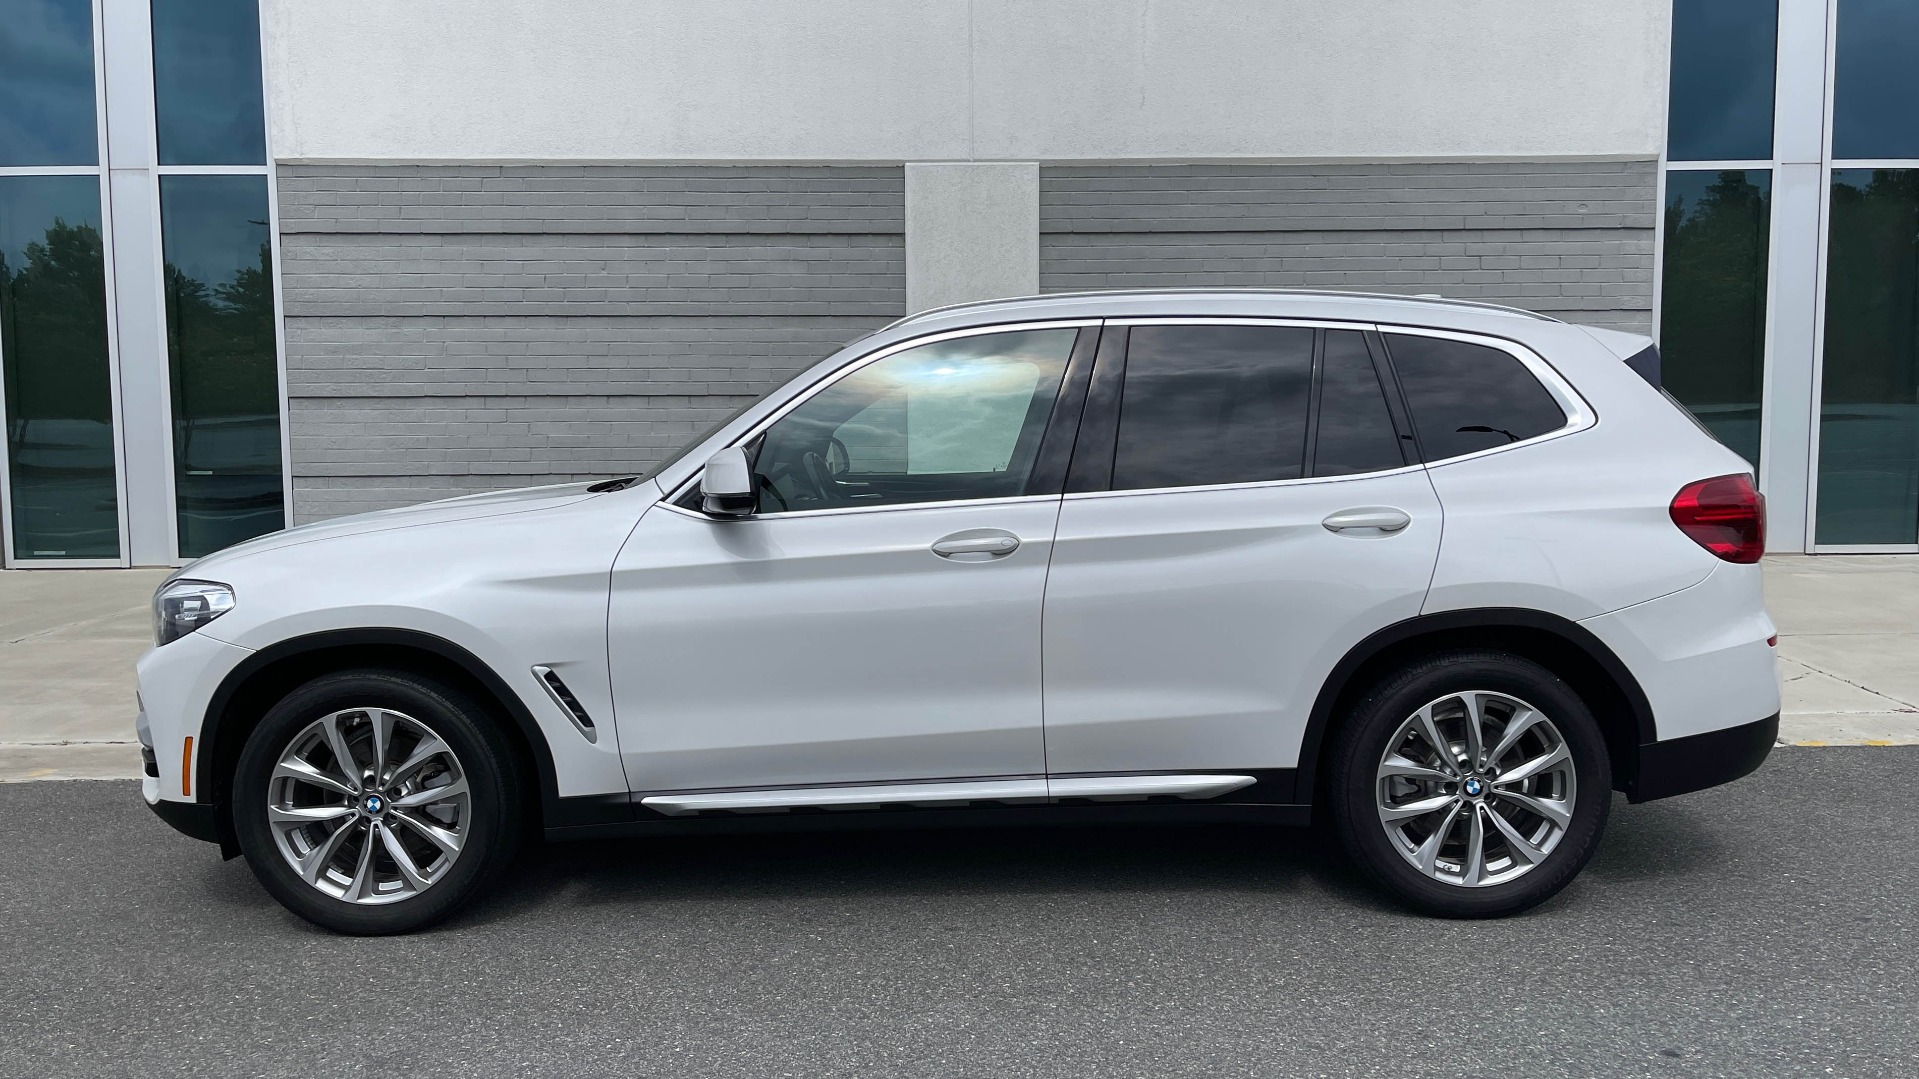 Used 2018 BMW X3 XDRIVE30I / NAV / PANO-ROOF / HTD STS / PARK DIST CNTRL / REARVIEW for sale $38,995 at Formula Imports in Charlotte NC 28227 3